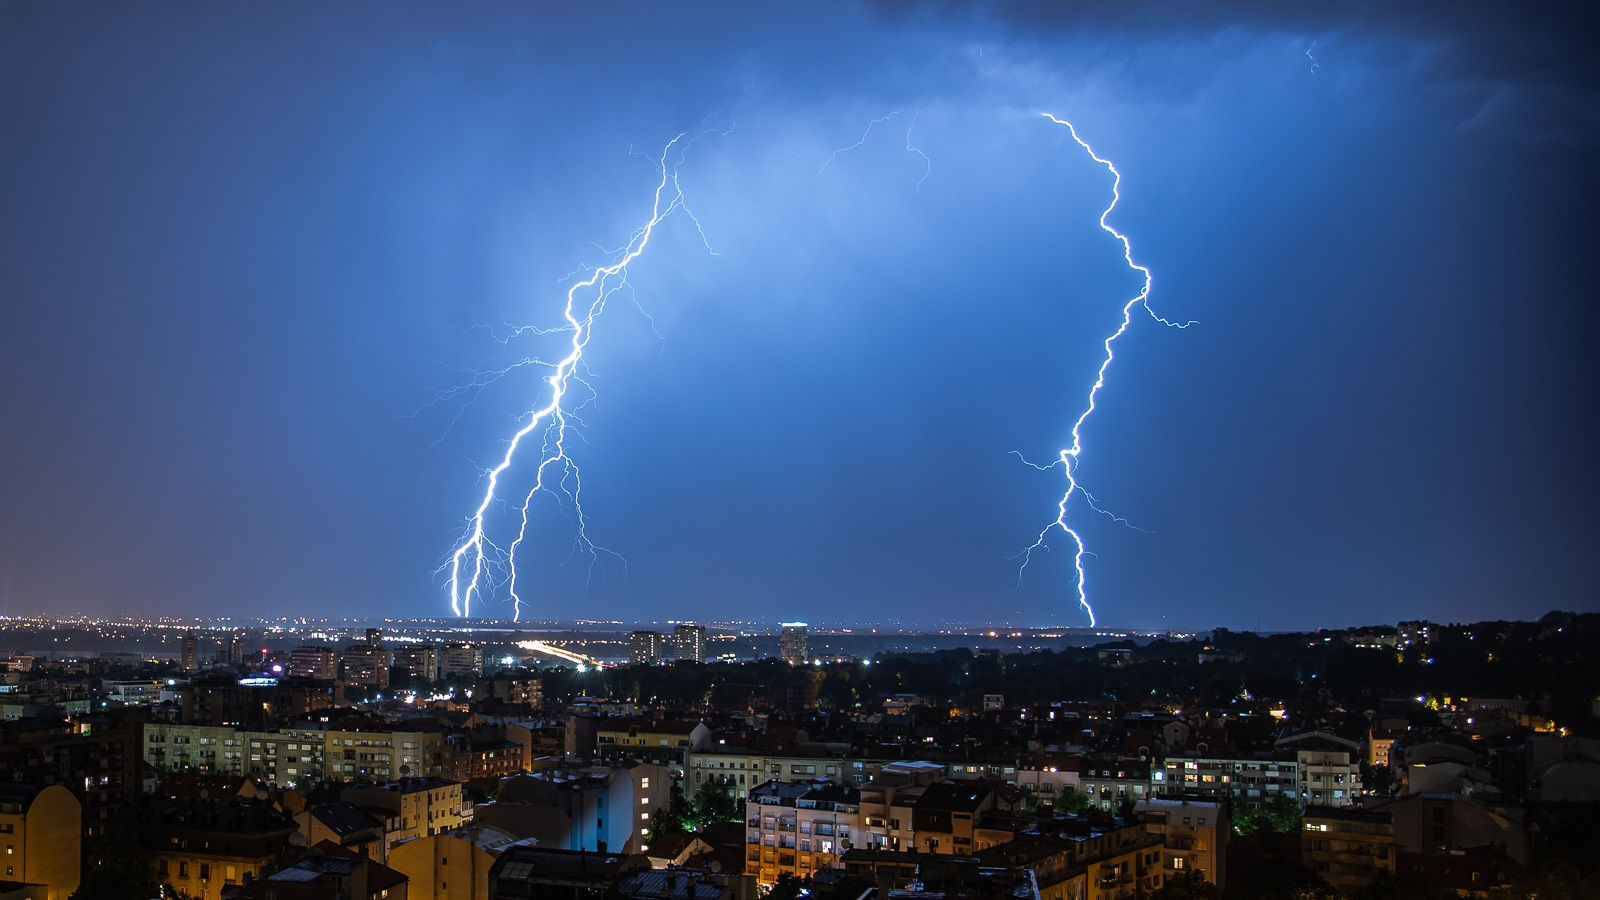 Lightning strike (Image by Shutterstock / eCore Art.)